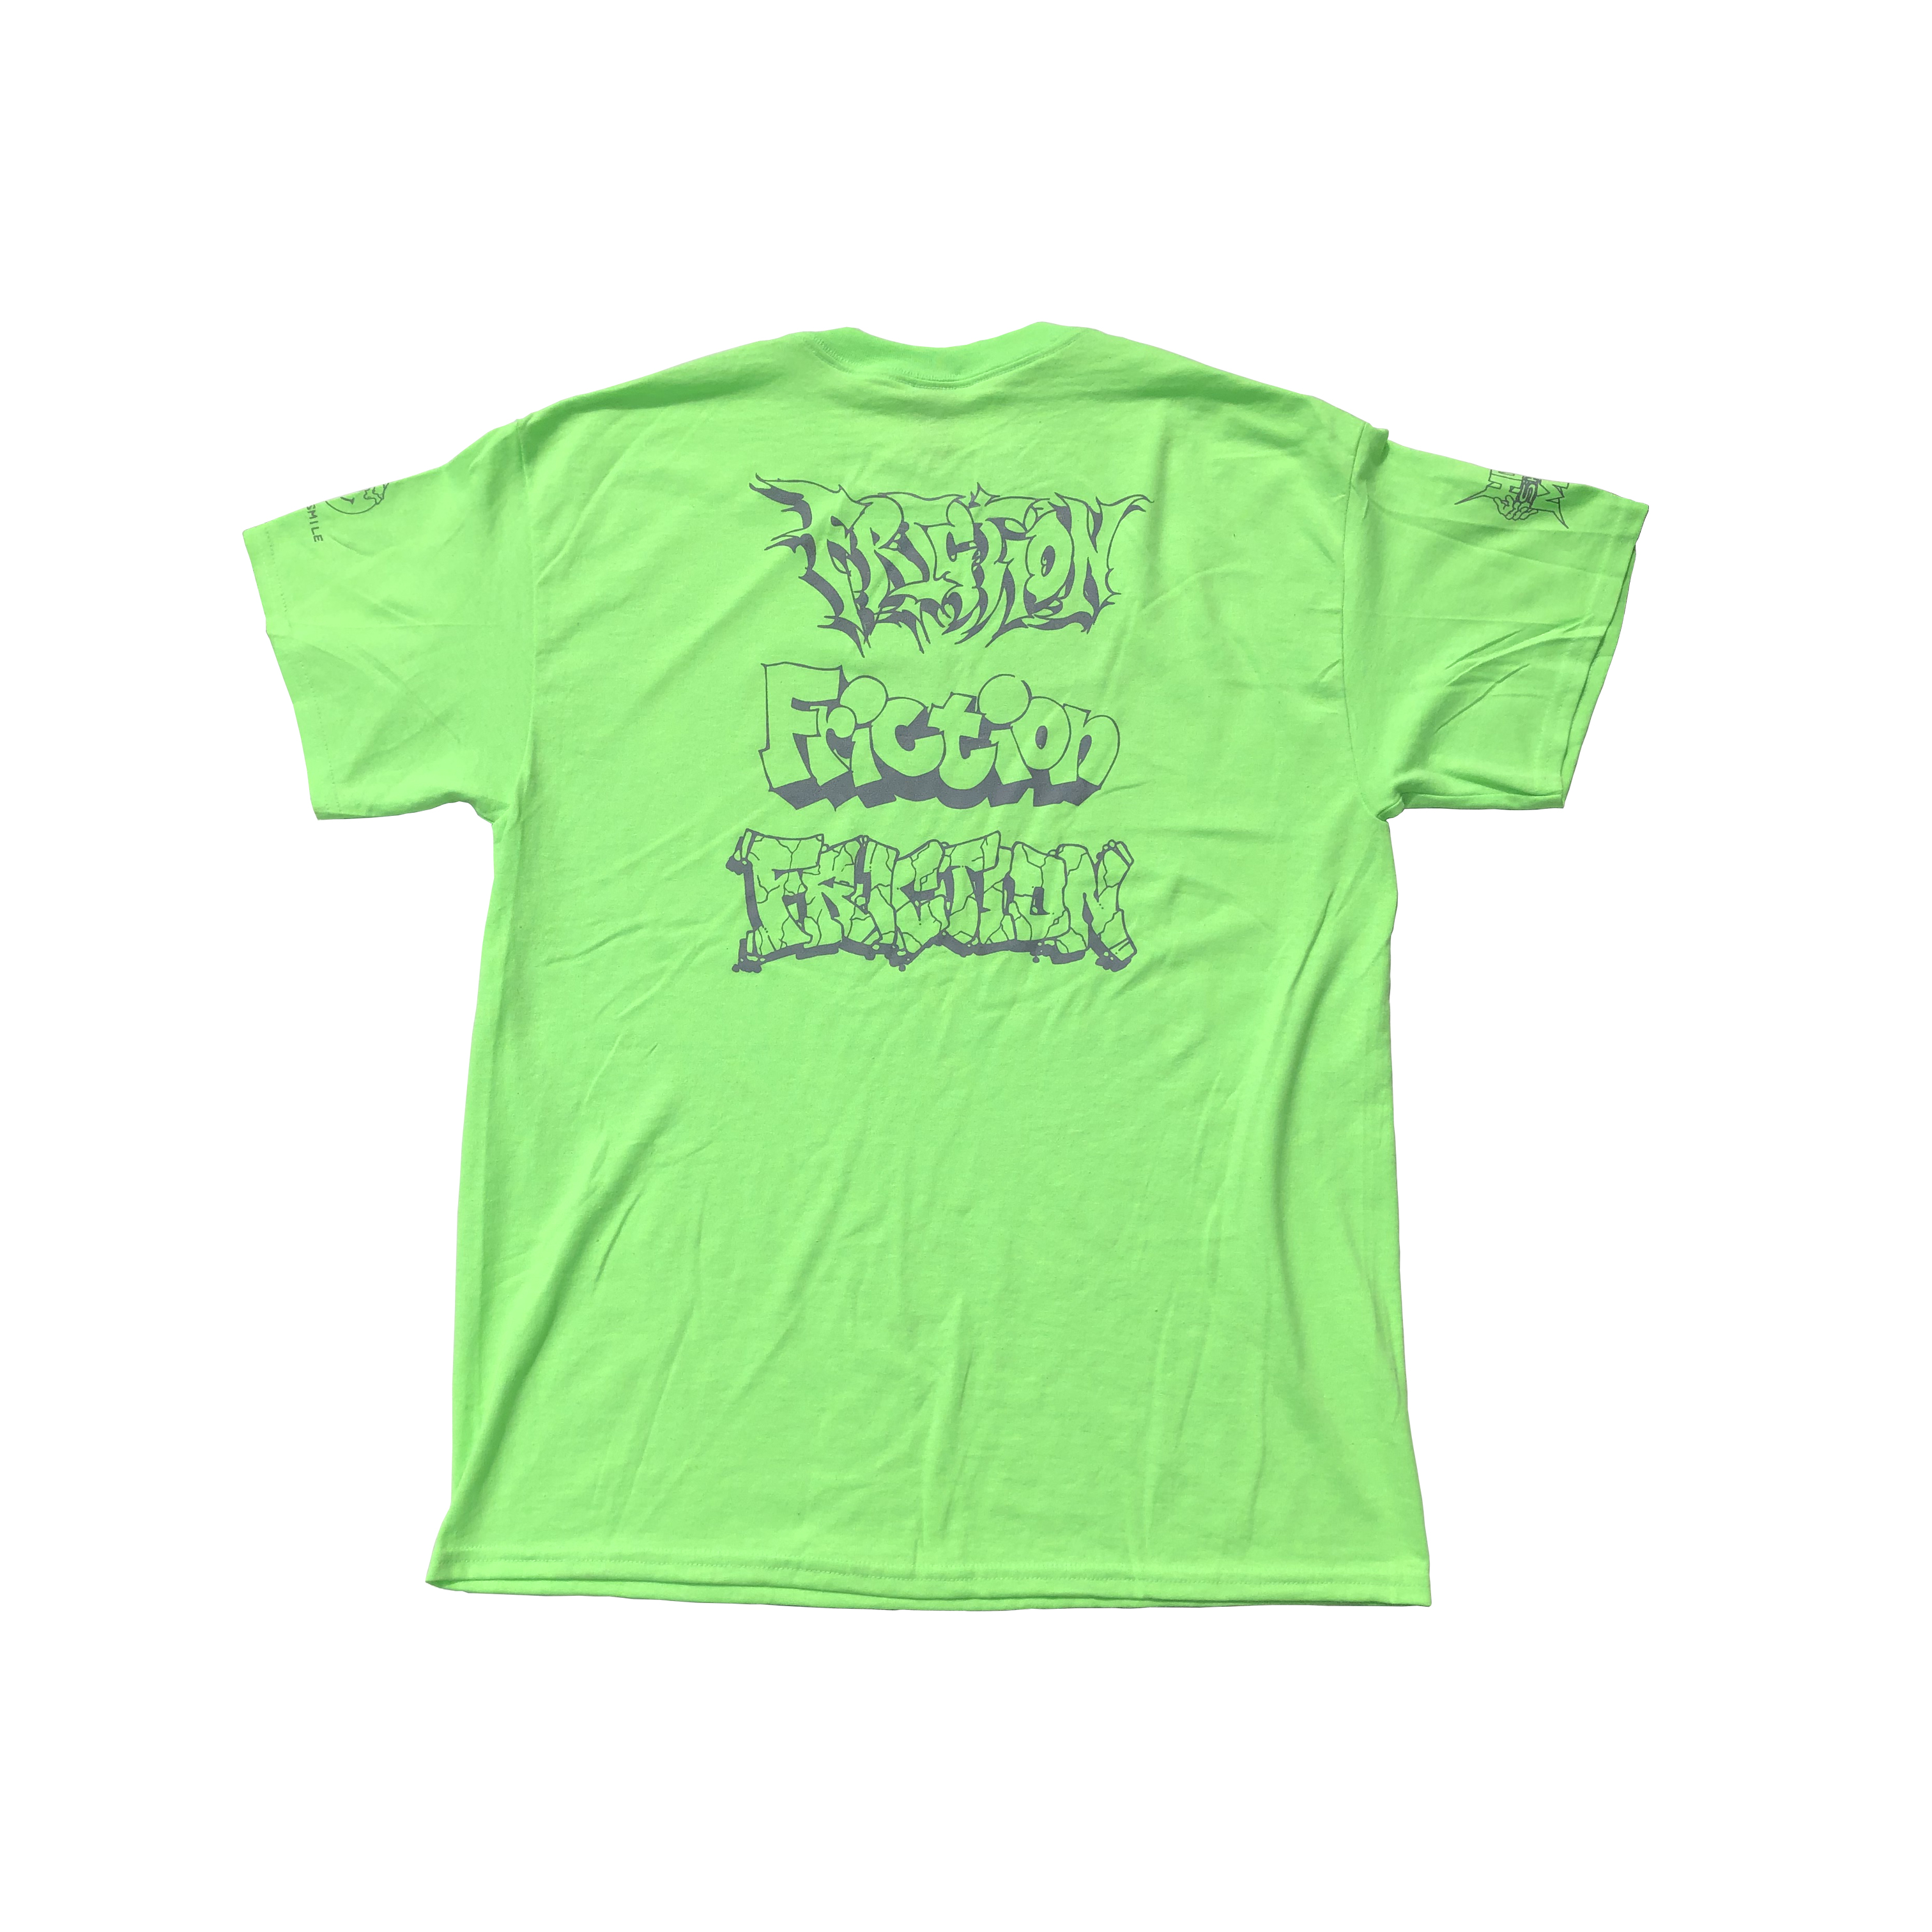 Friction Mosh Insurance Tee - Green